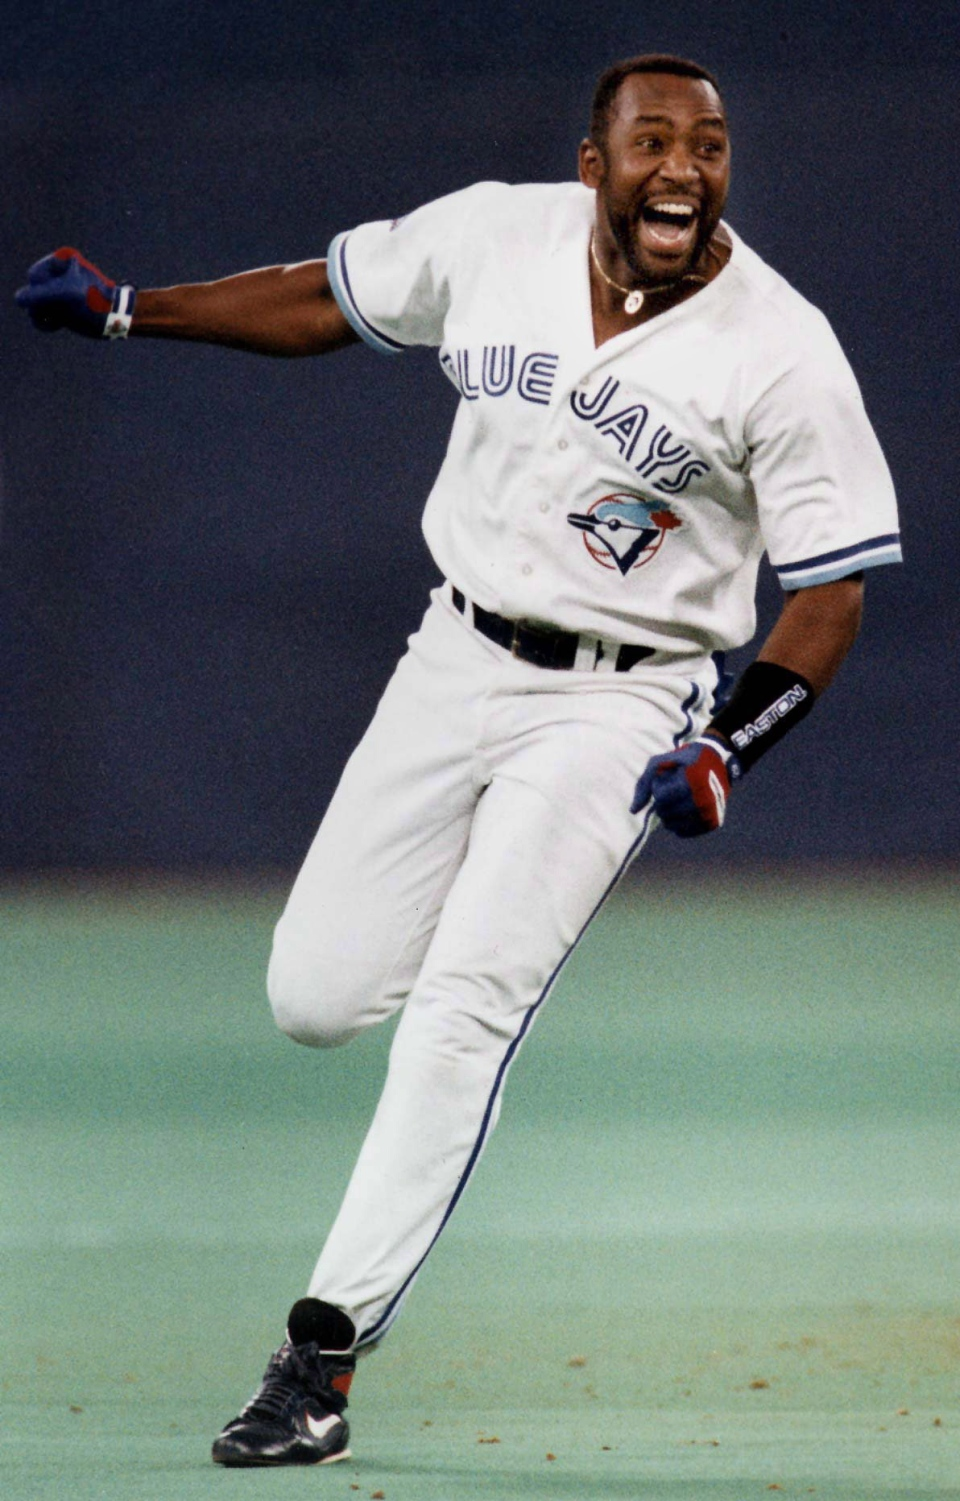 Toronto Blue Jays legend Joe Carter is one of 10 former players, managers and executives named to the National Baseball Hall of Fame's Today's Game Era ballot that was unveiled on Monday.